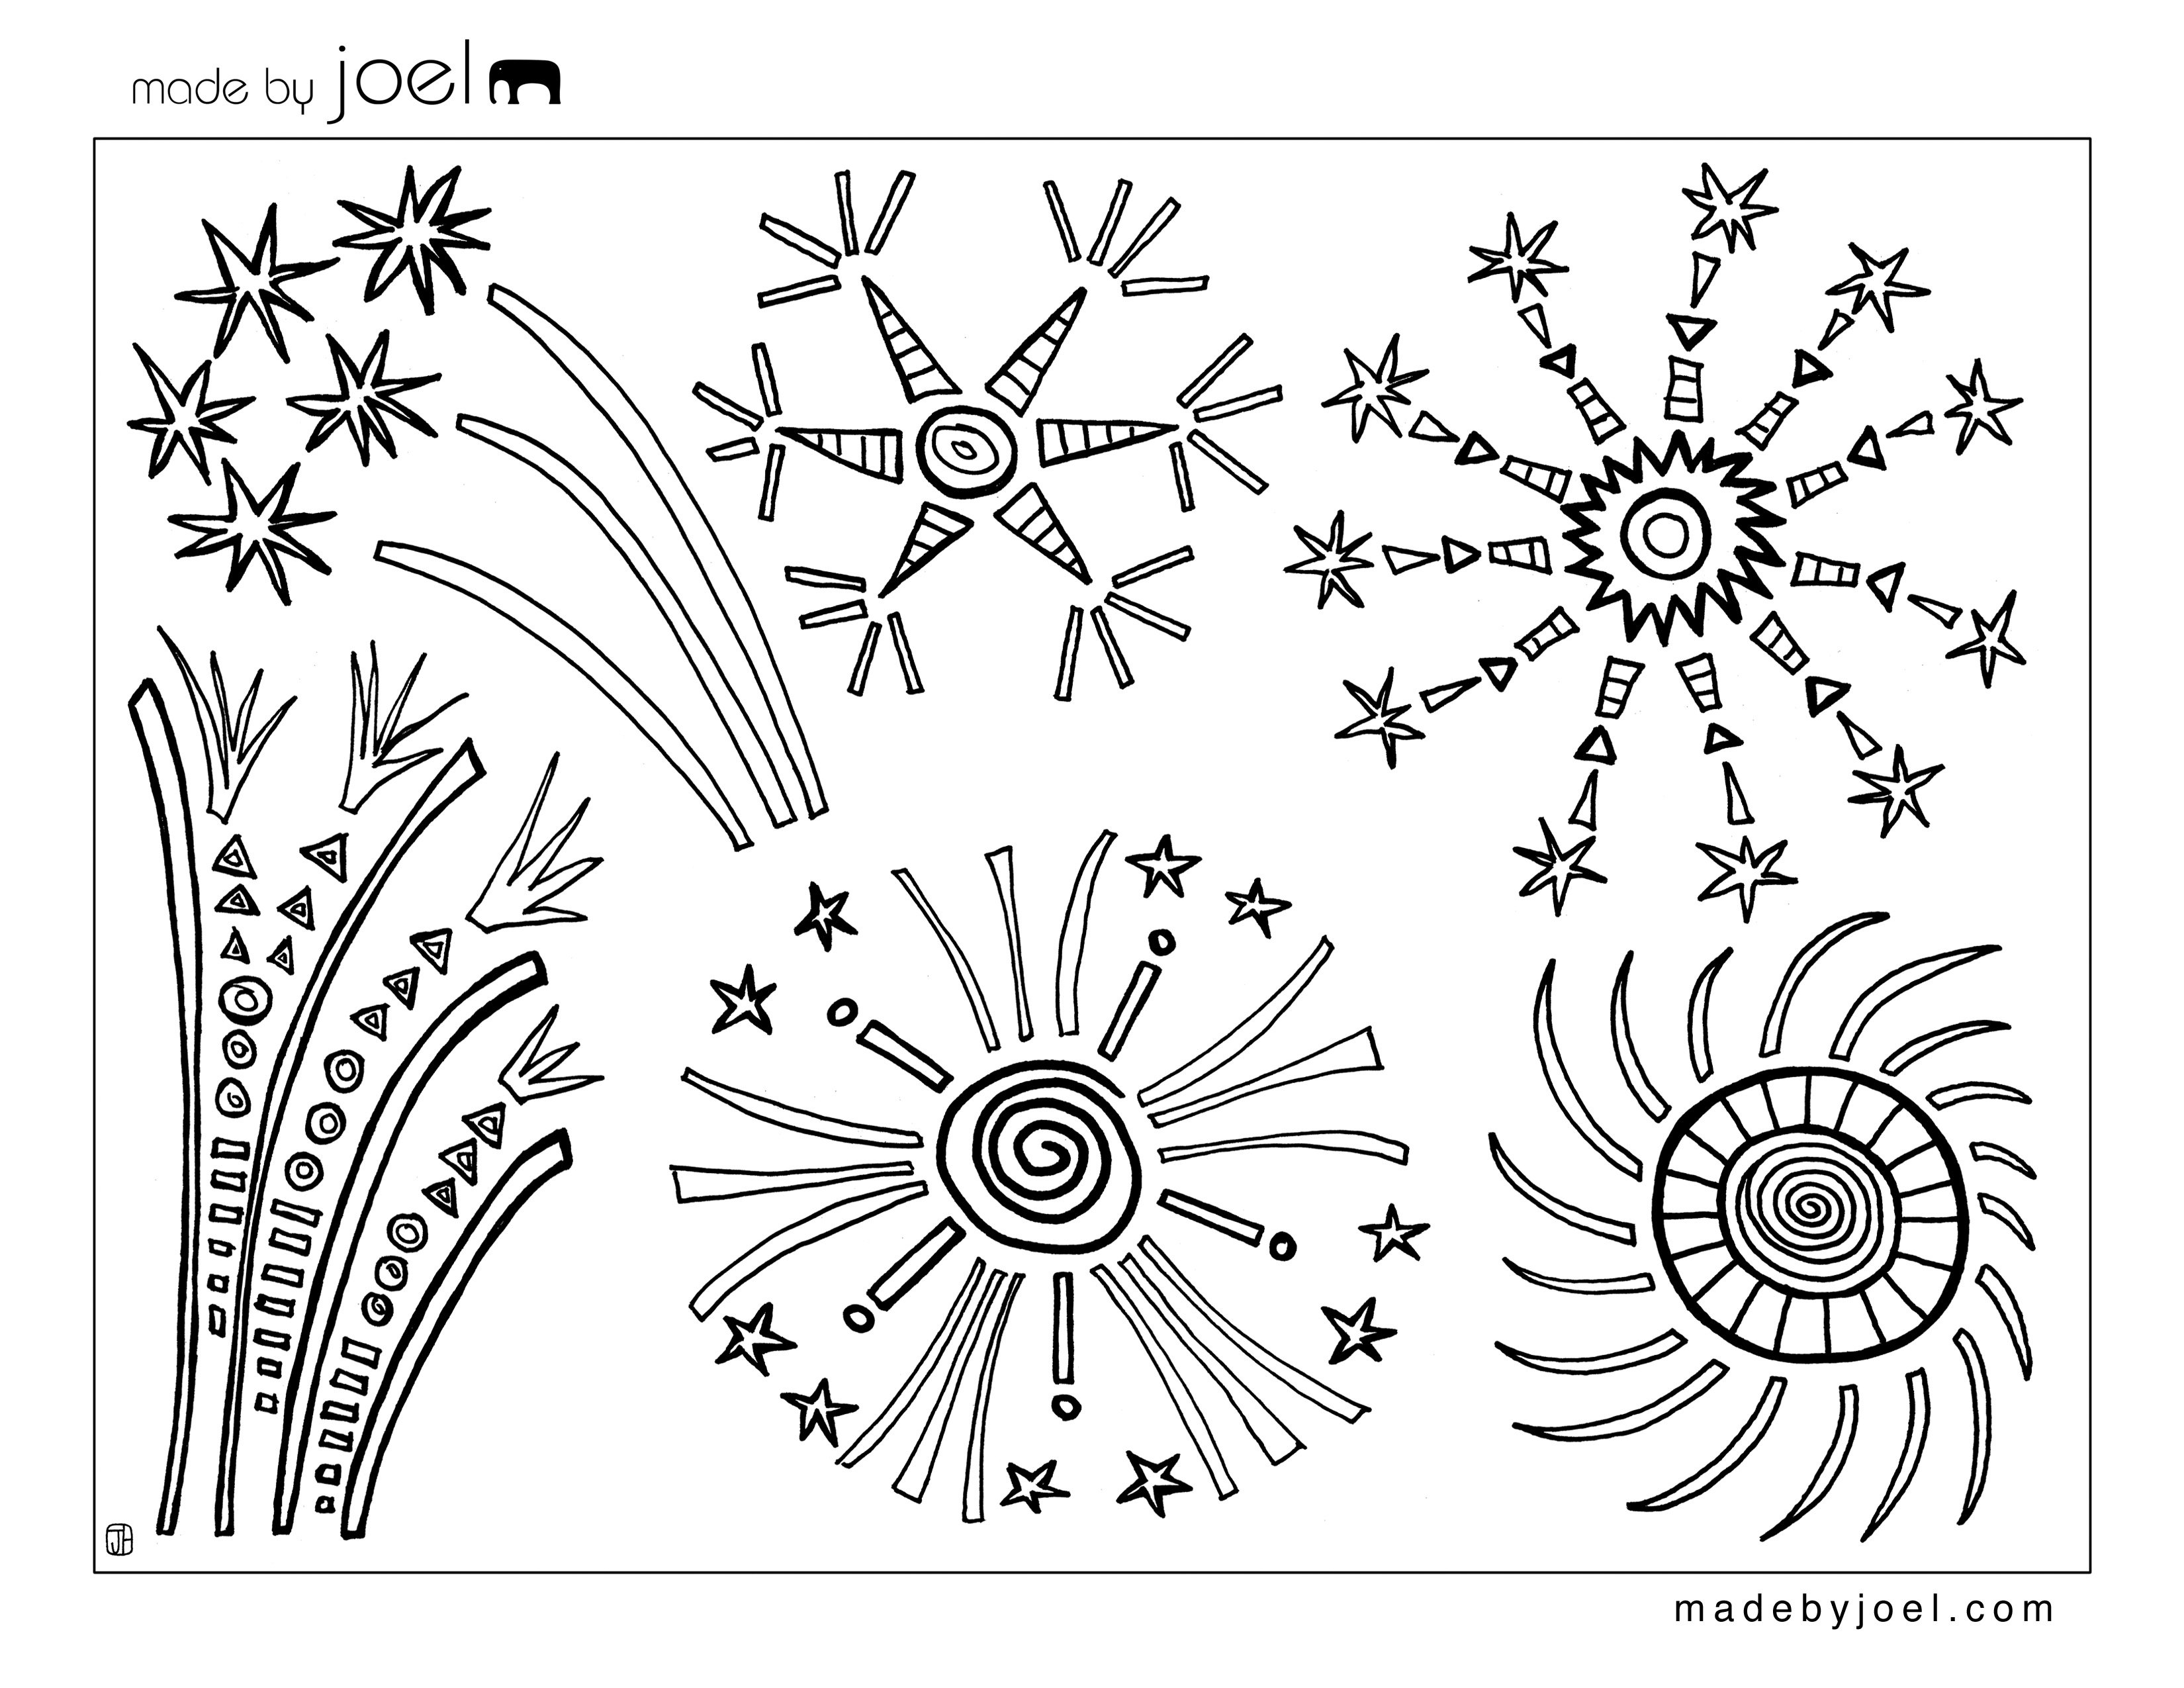 Made by Joel » Free Coloring Sheets